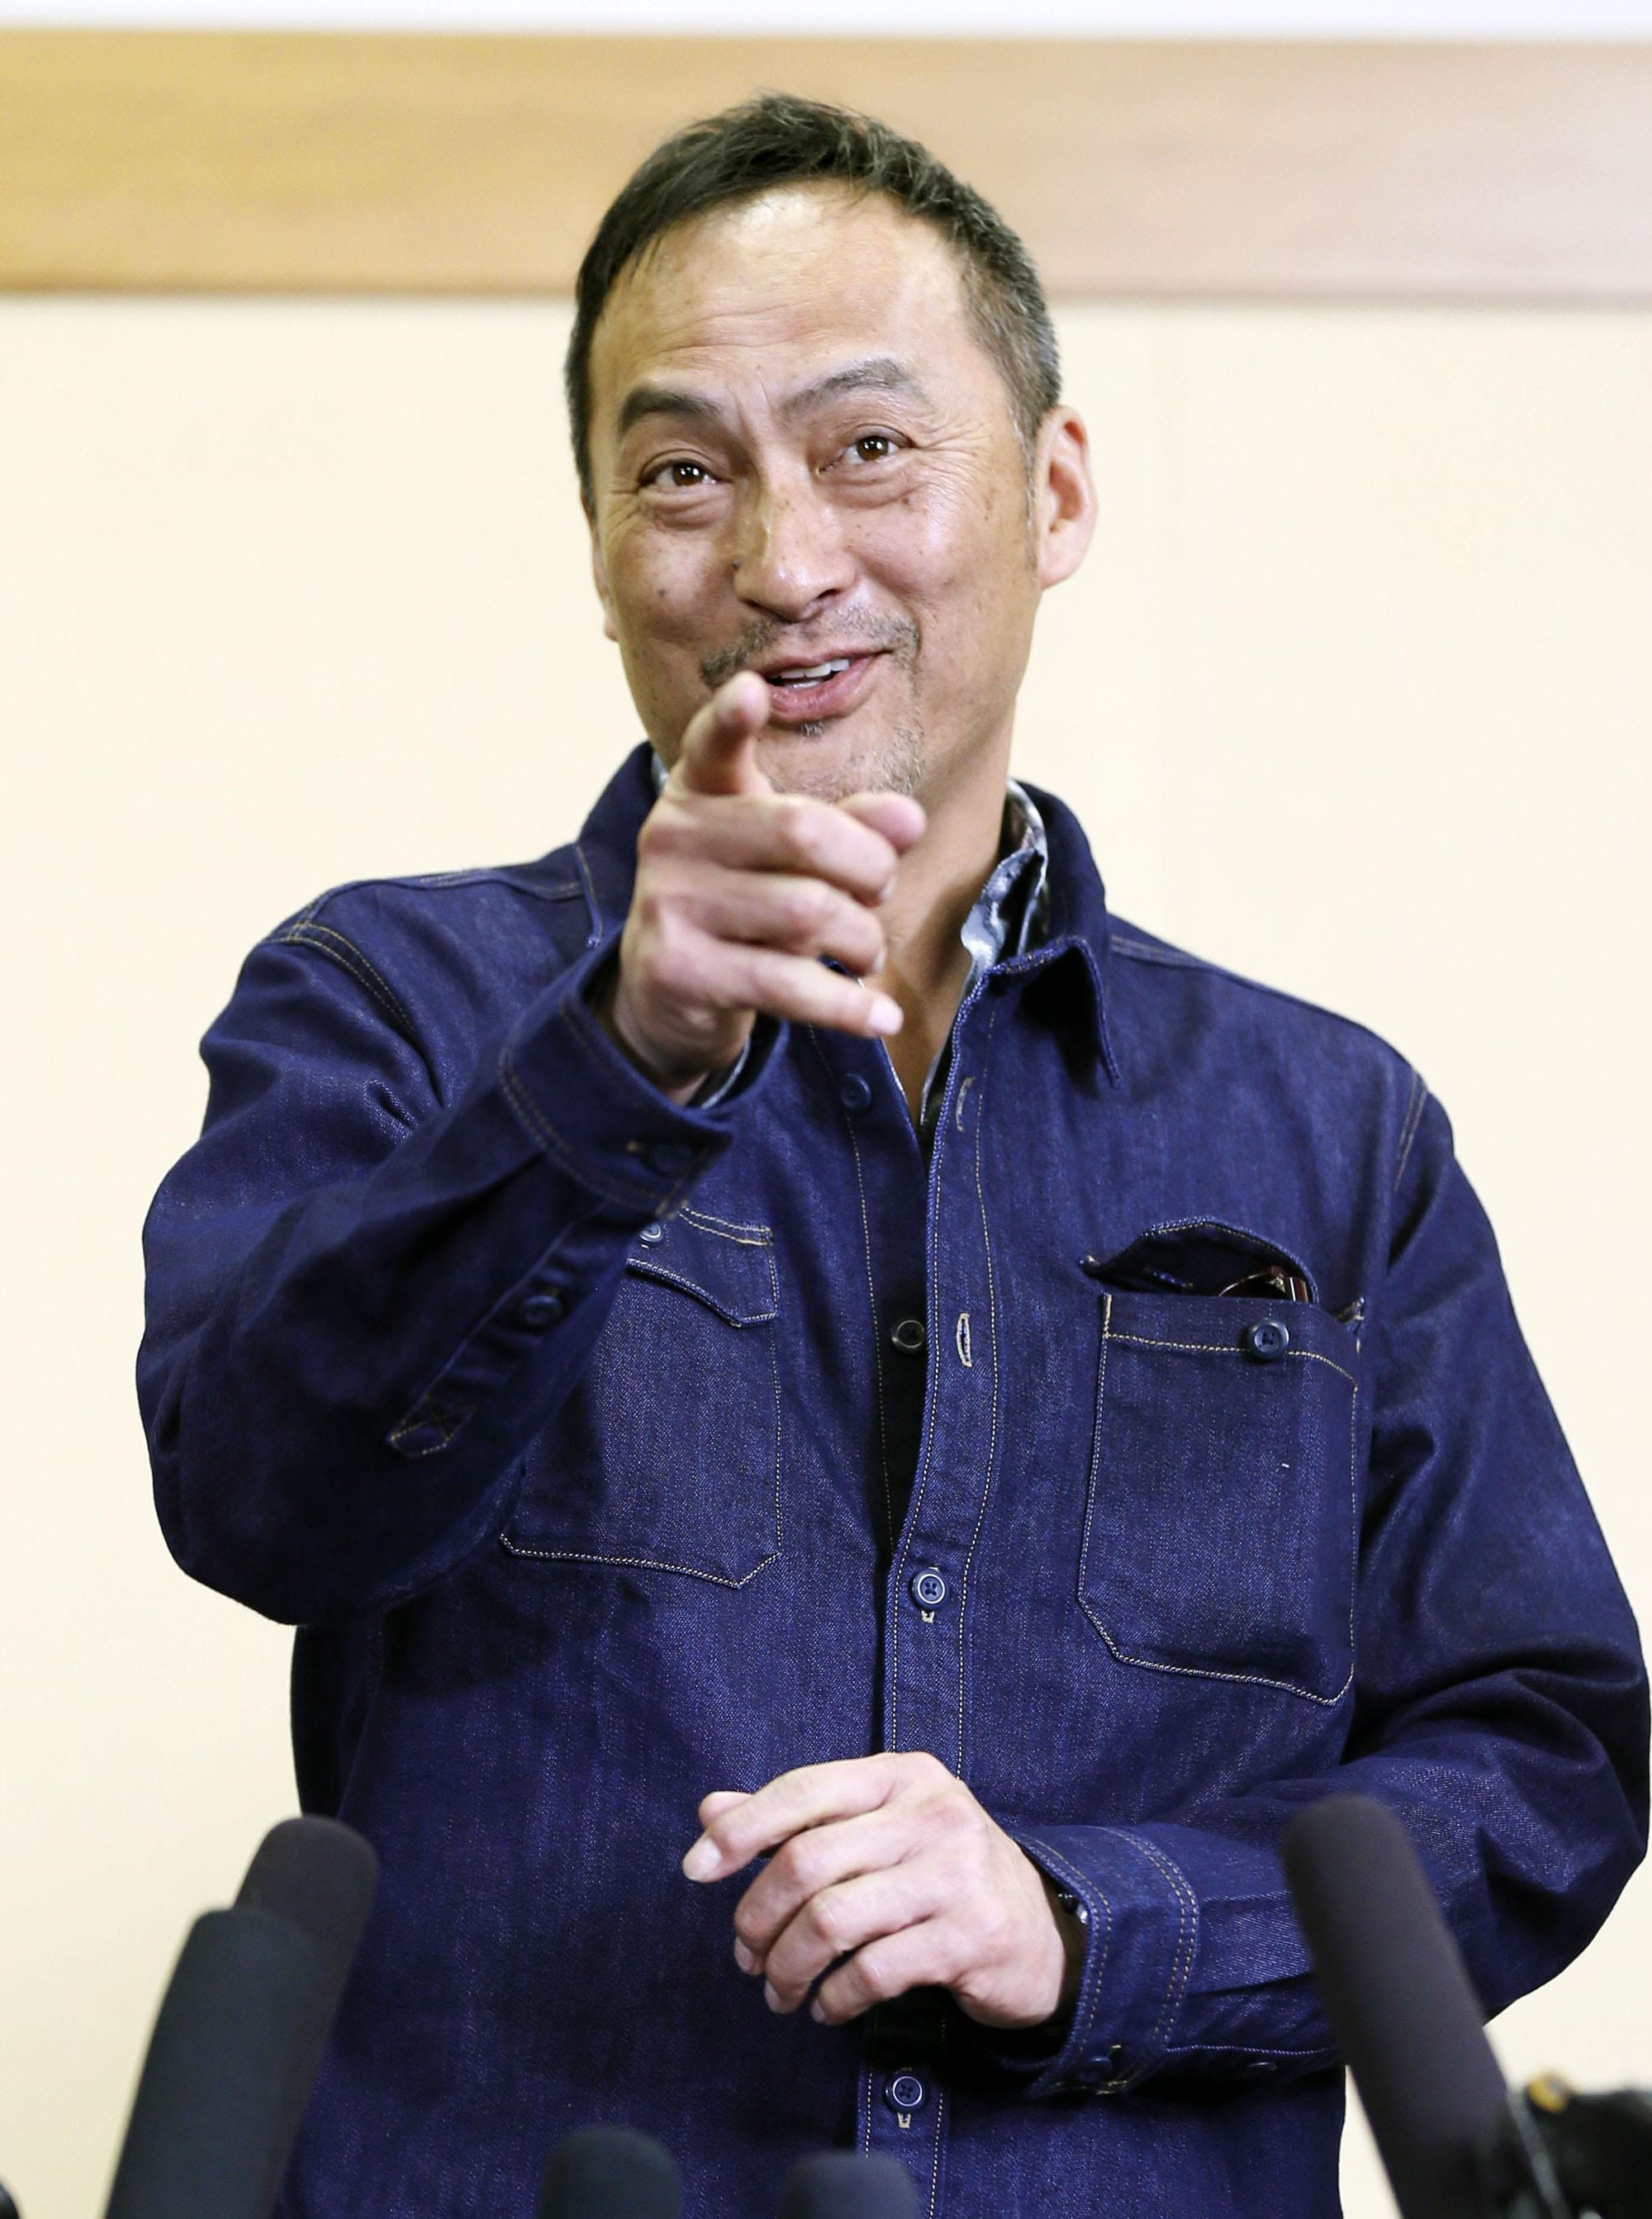 Ken Watanabe For mobile